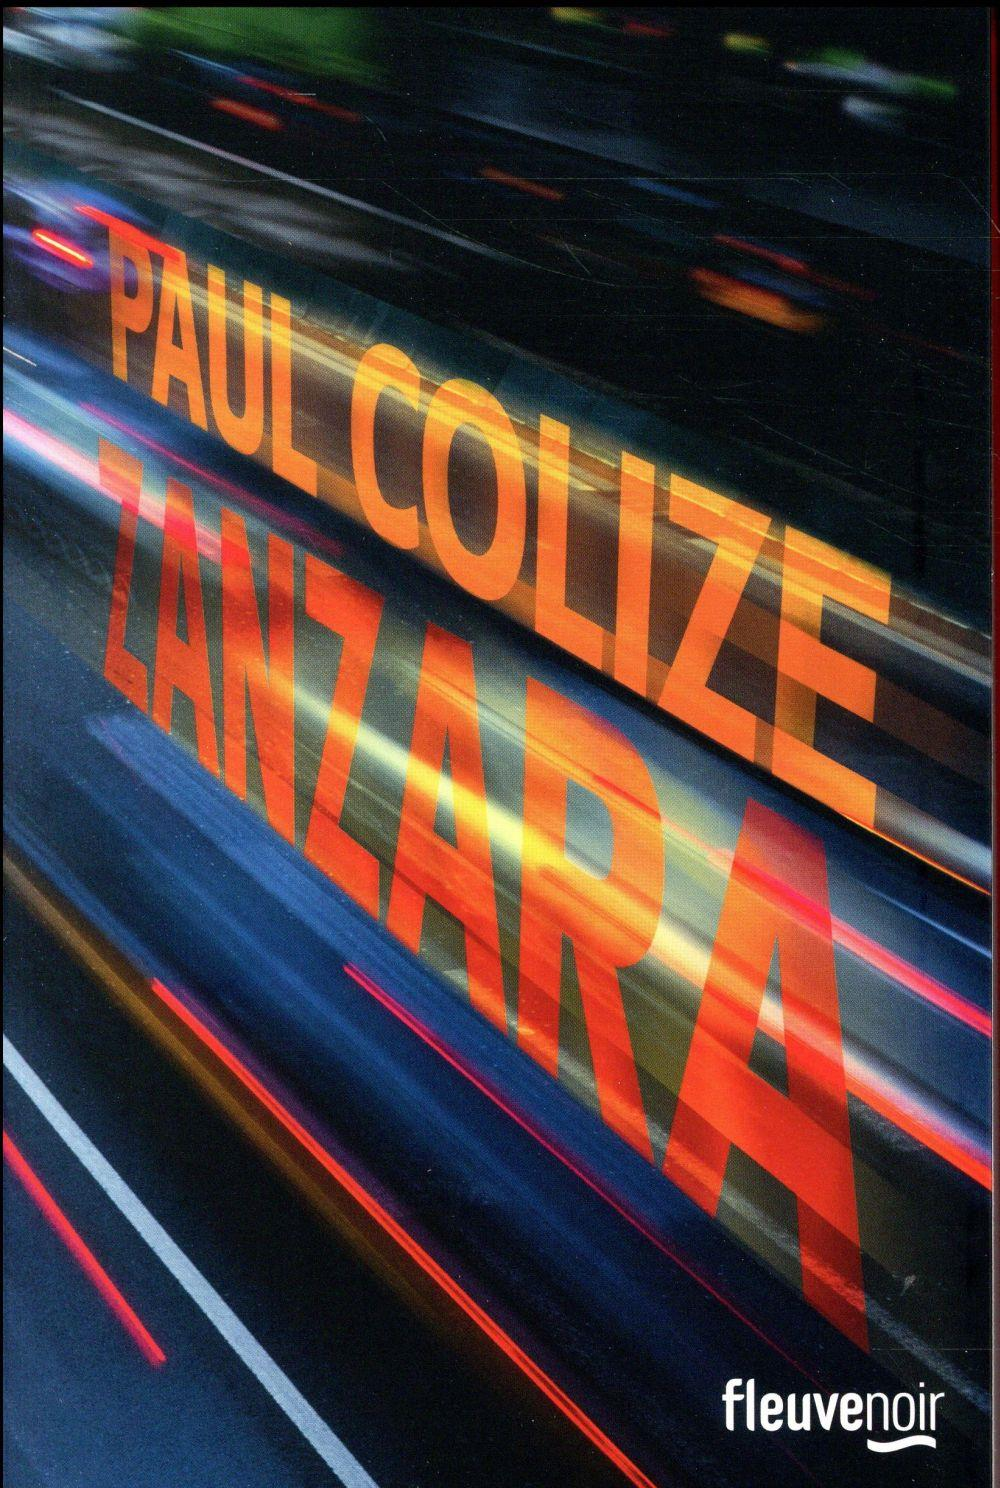 Vente                                 Zanzara                                  - Paul Colize